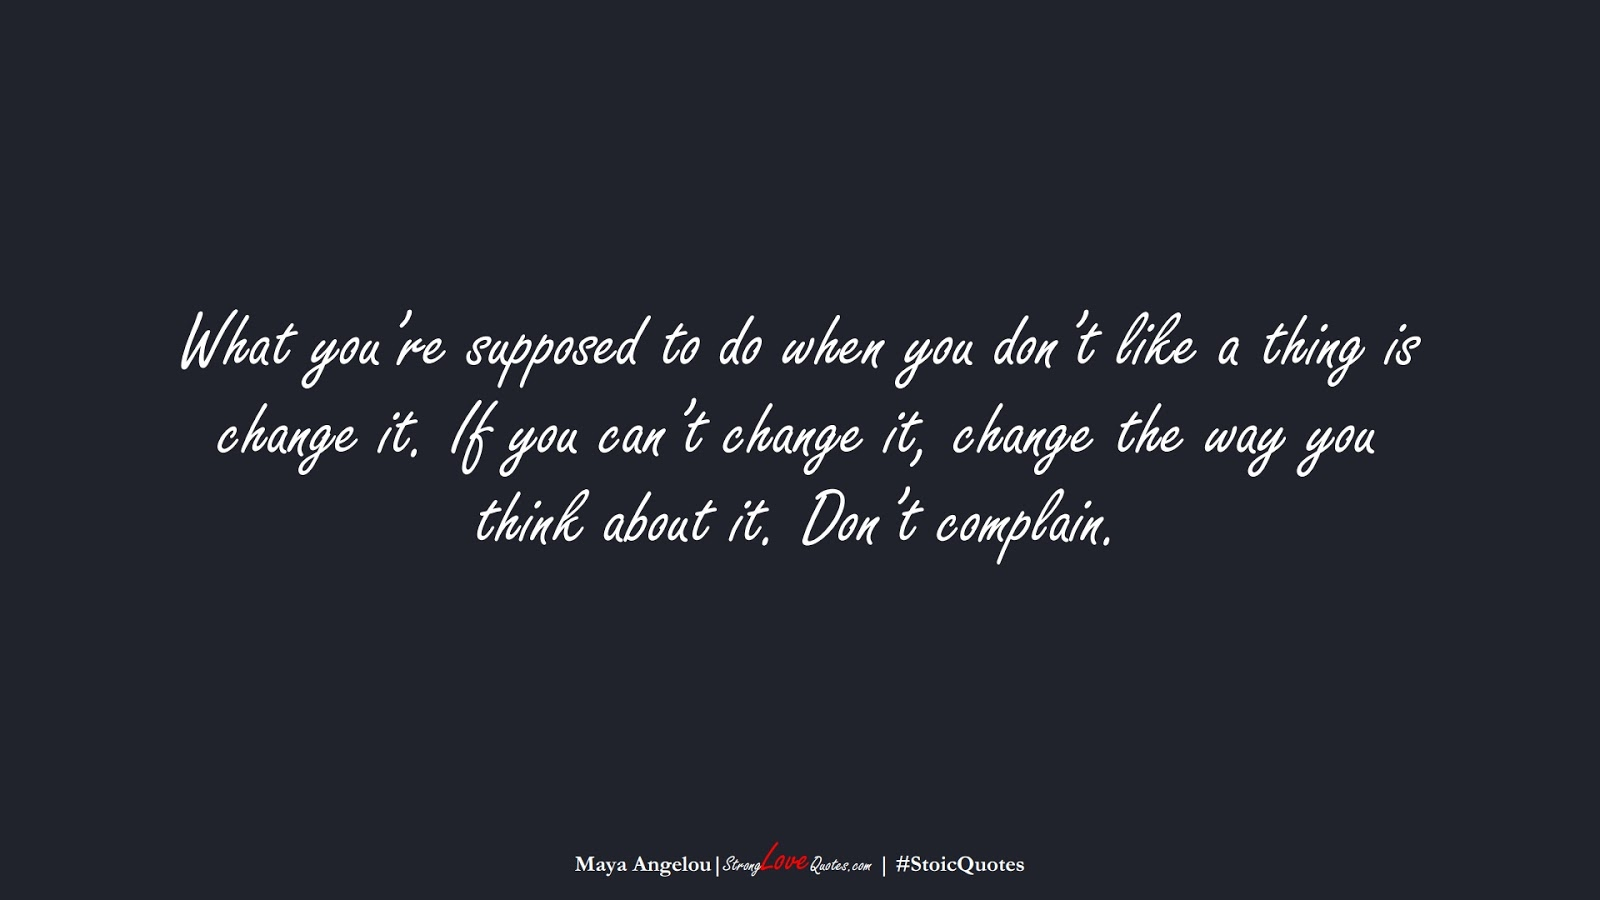 What you're supposed to do when you don't like a thing is change it. If you can't change it, change the way you think about it. Don't complain. (Maya Angelou);  #StoicQuotes